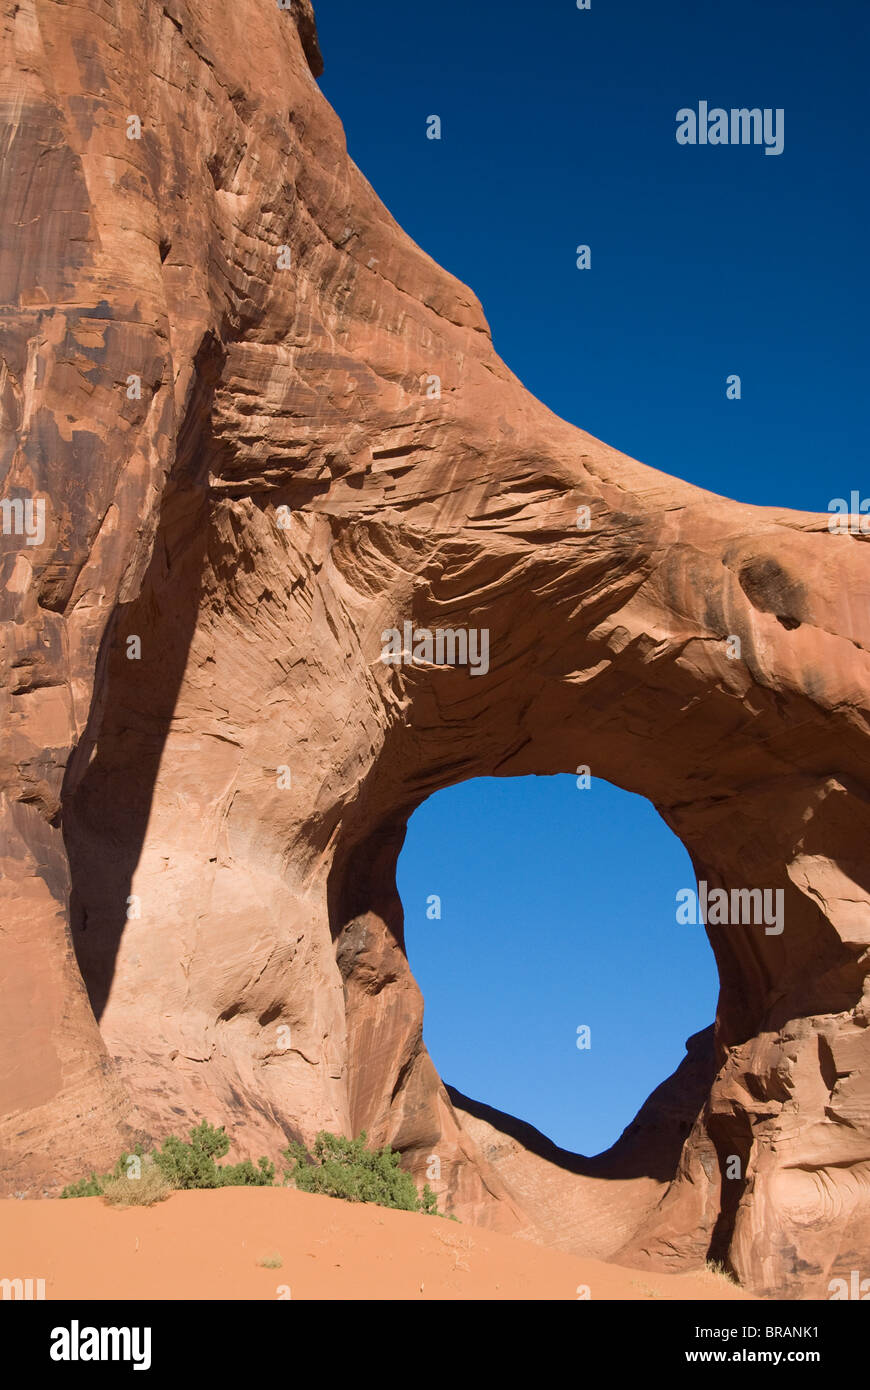 Ear of the Wind Arch, Mystery Valley, Monument Valley Navajo Tribal Park, Arizona, United States of America, North - Stock Image